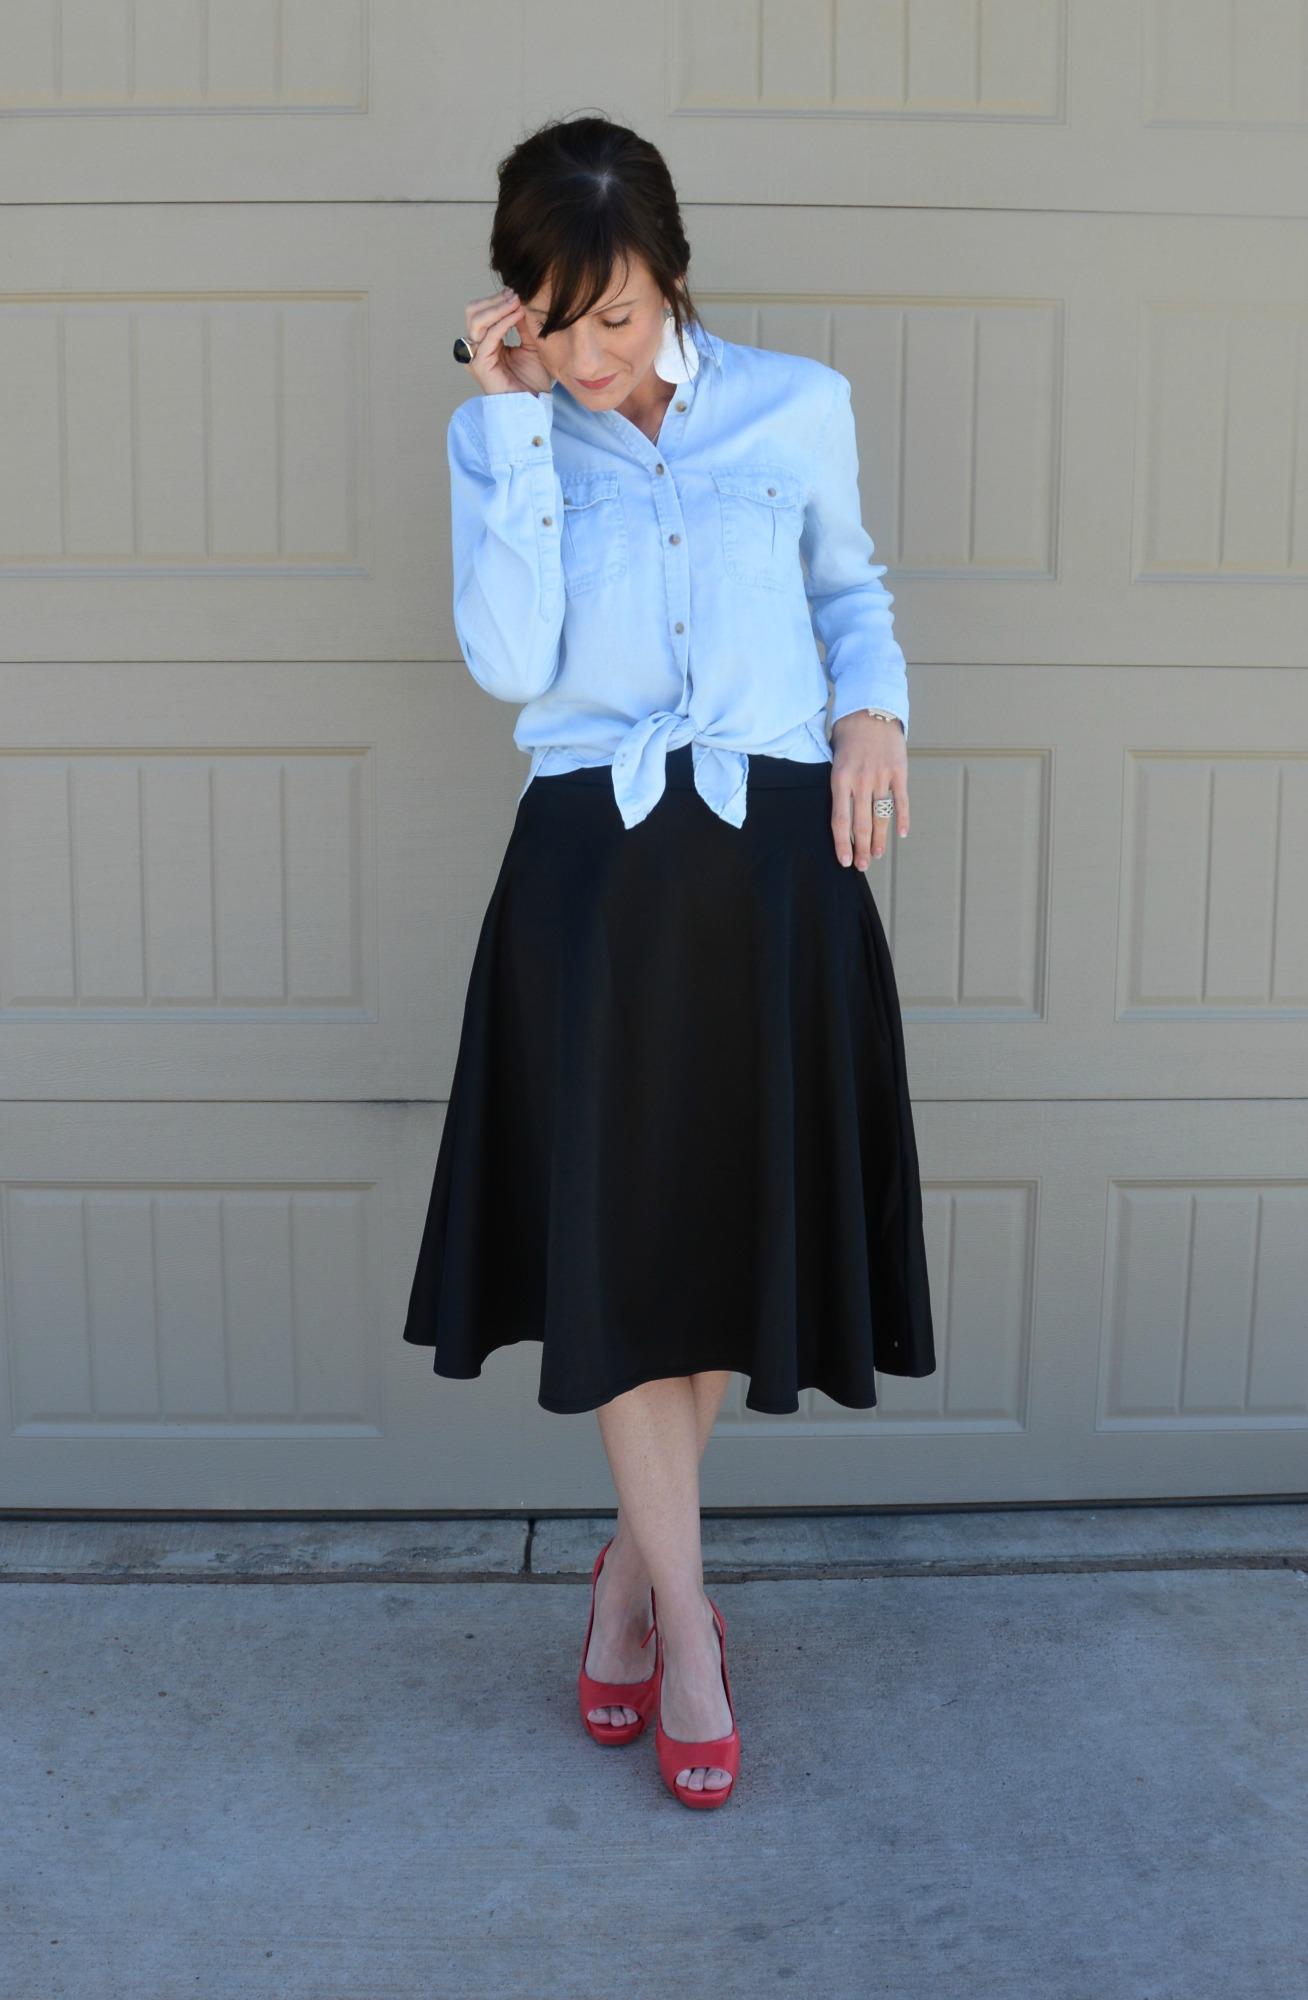 d0523e524d Casual Friday Link Up - Denim and Midiskirts - Two Thirty-Five Designs